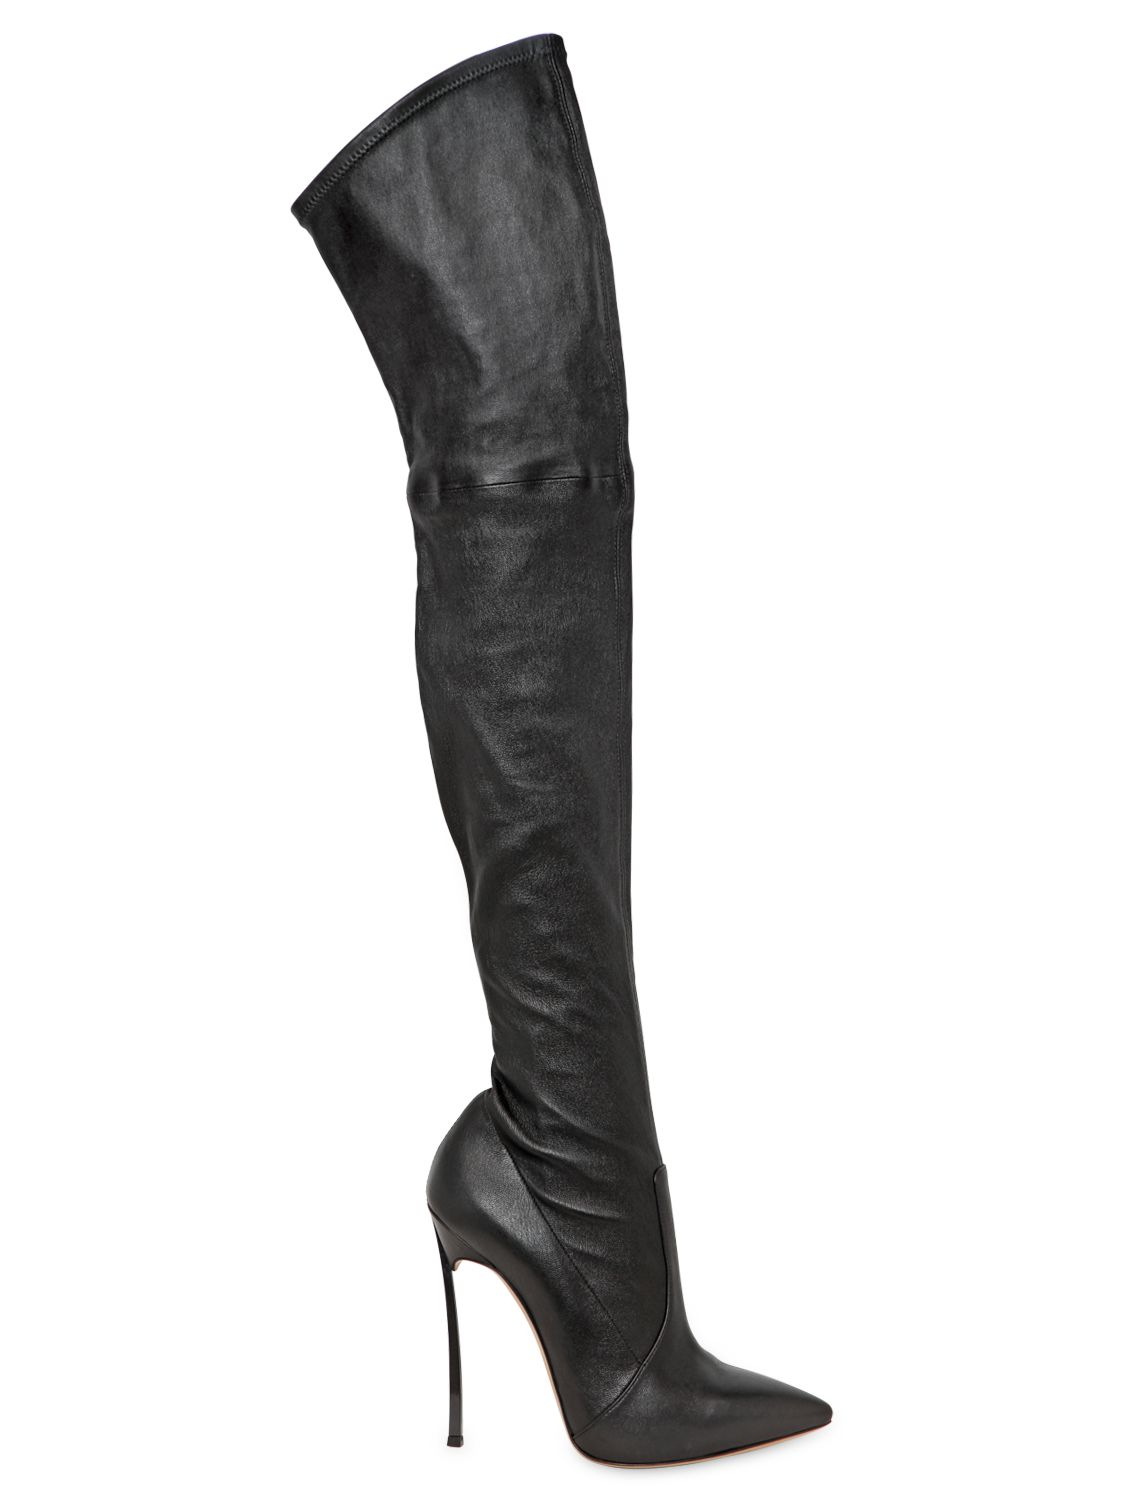 casadei 120mm the knee leather boots in black lyst